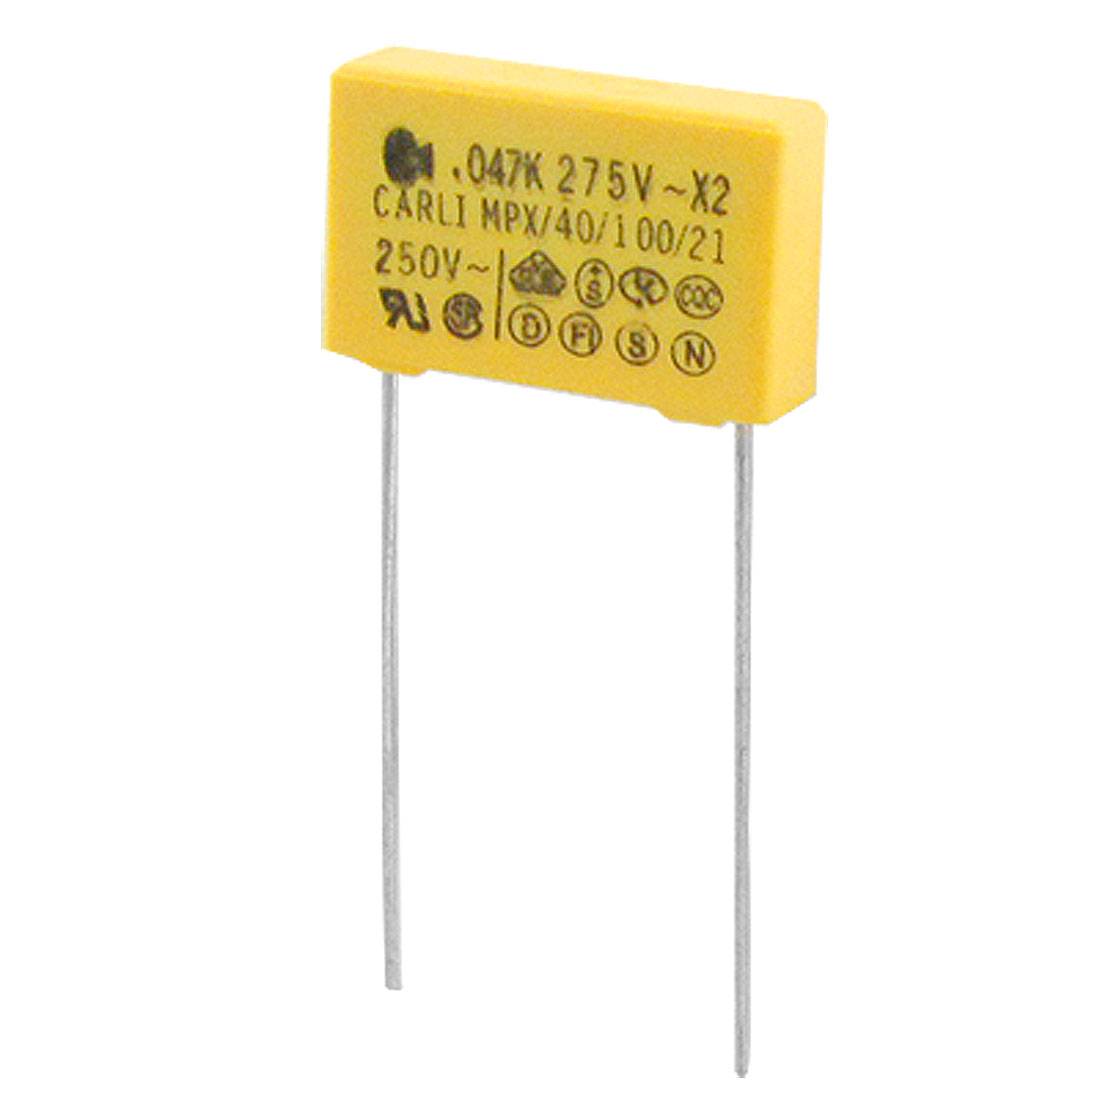 10pcs 250V 47nF 0.047uF 10% Polypropylene Film Safety Capacitor